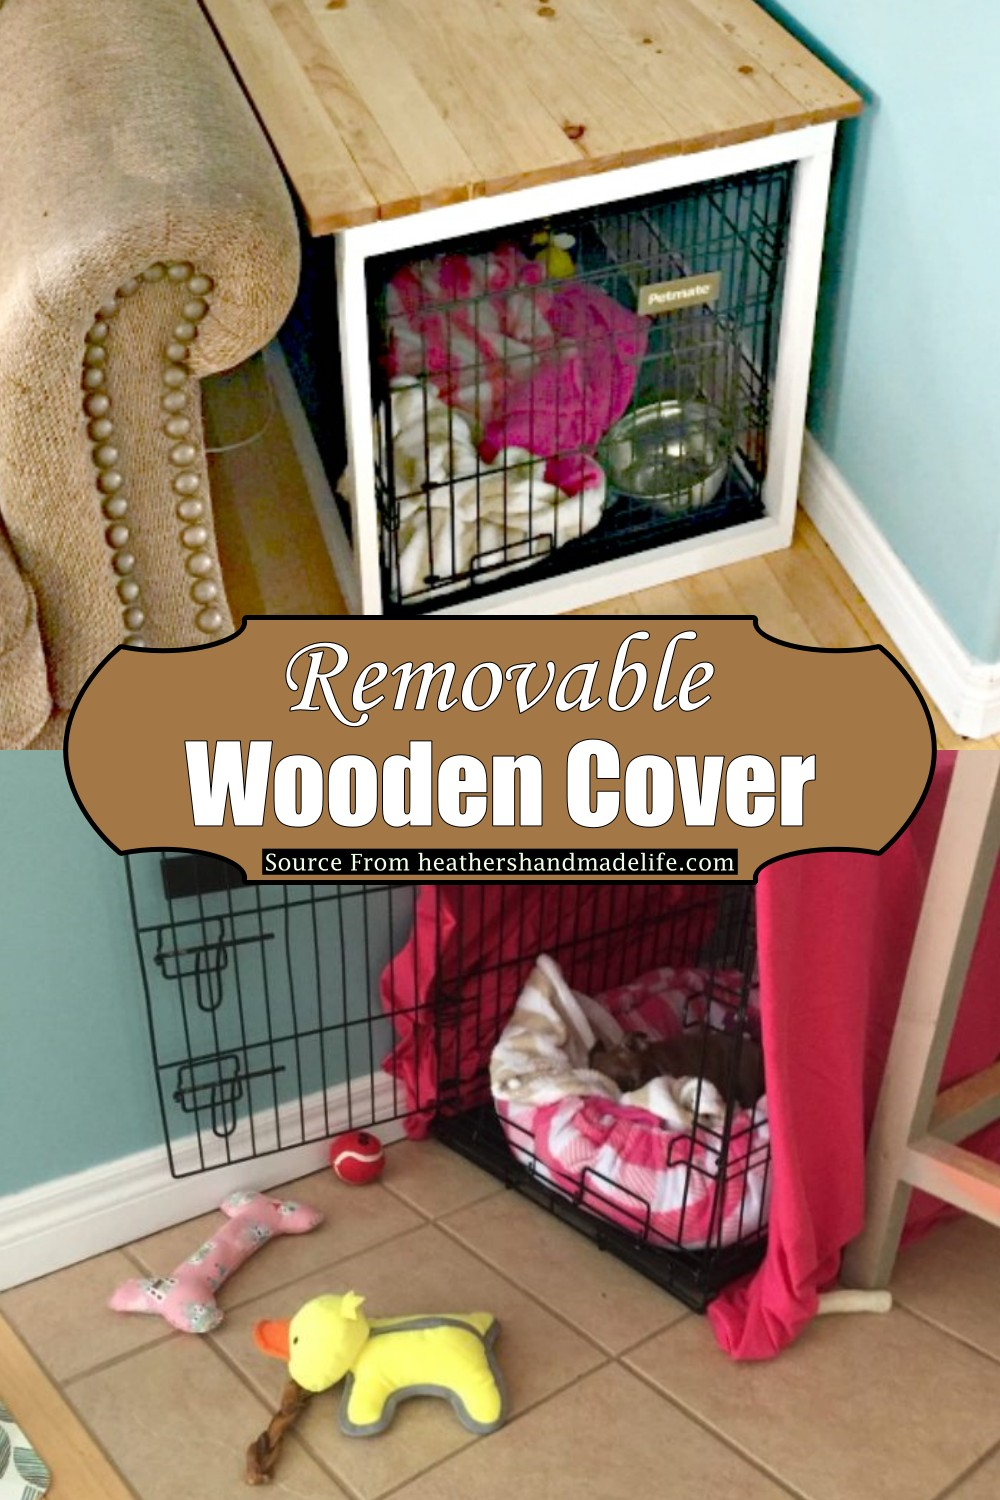 Removable Wooden Cover